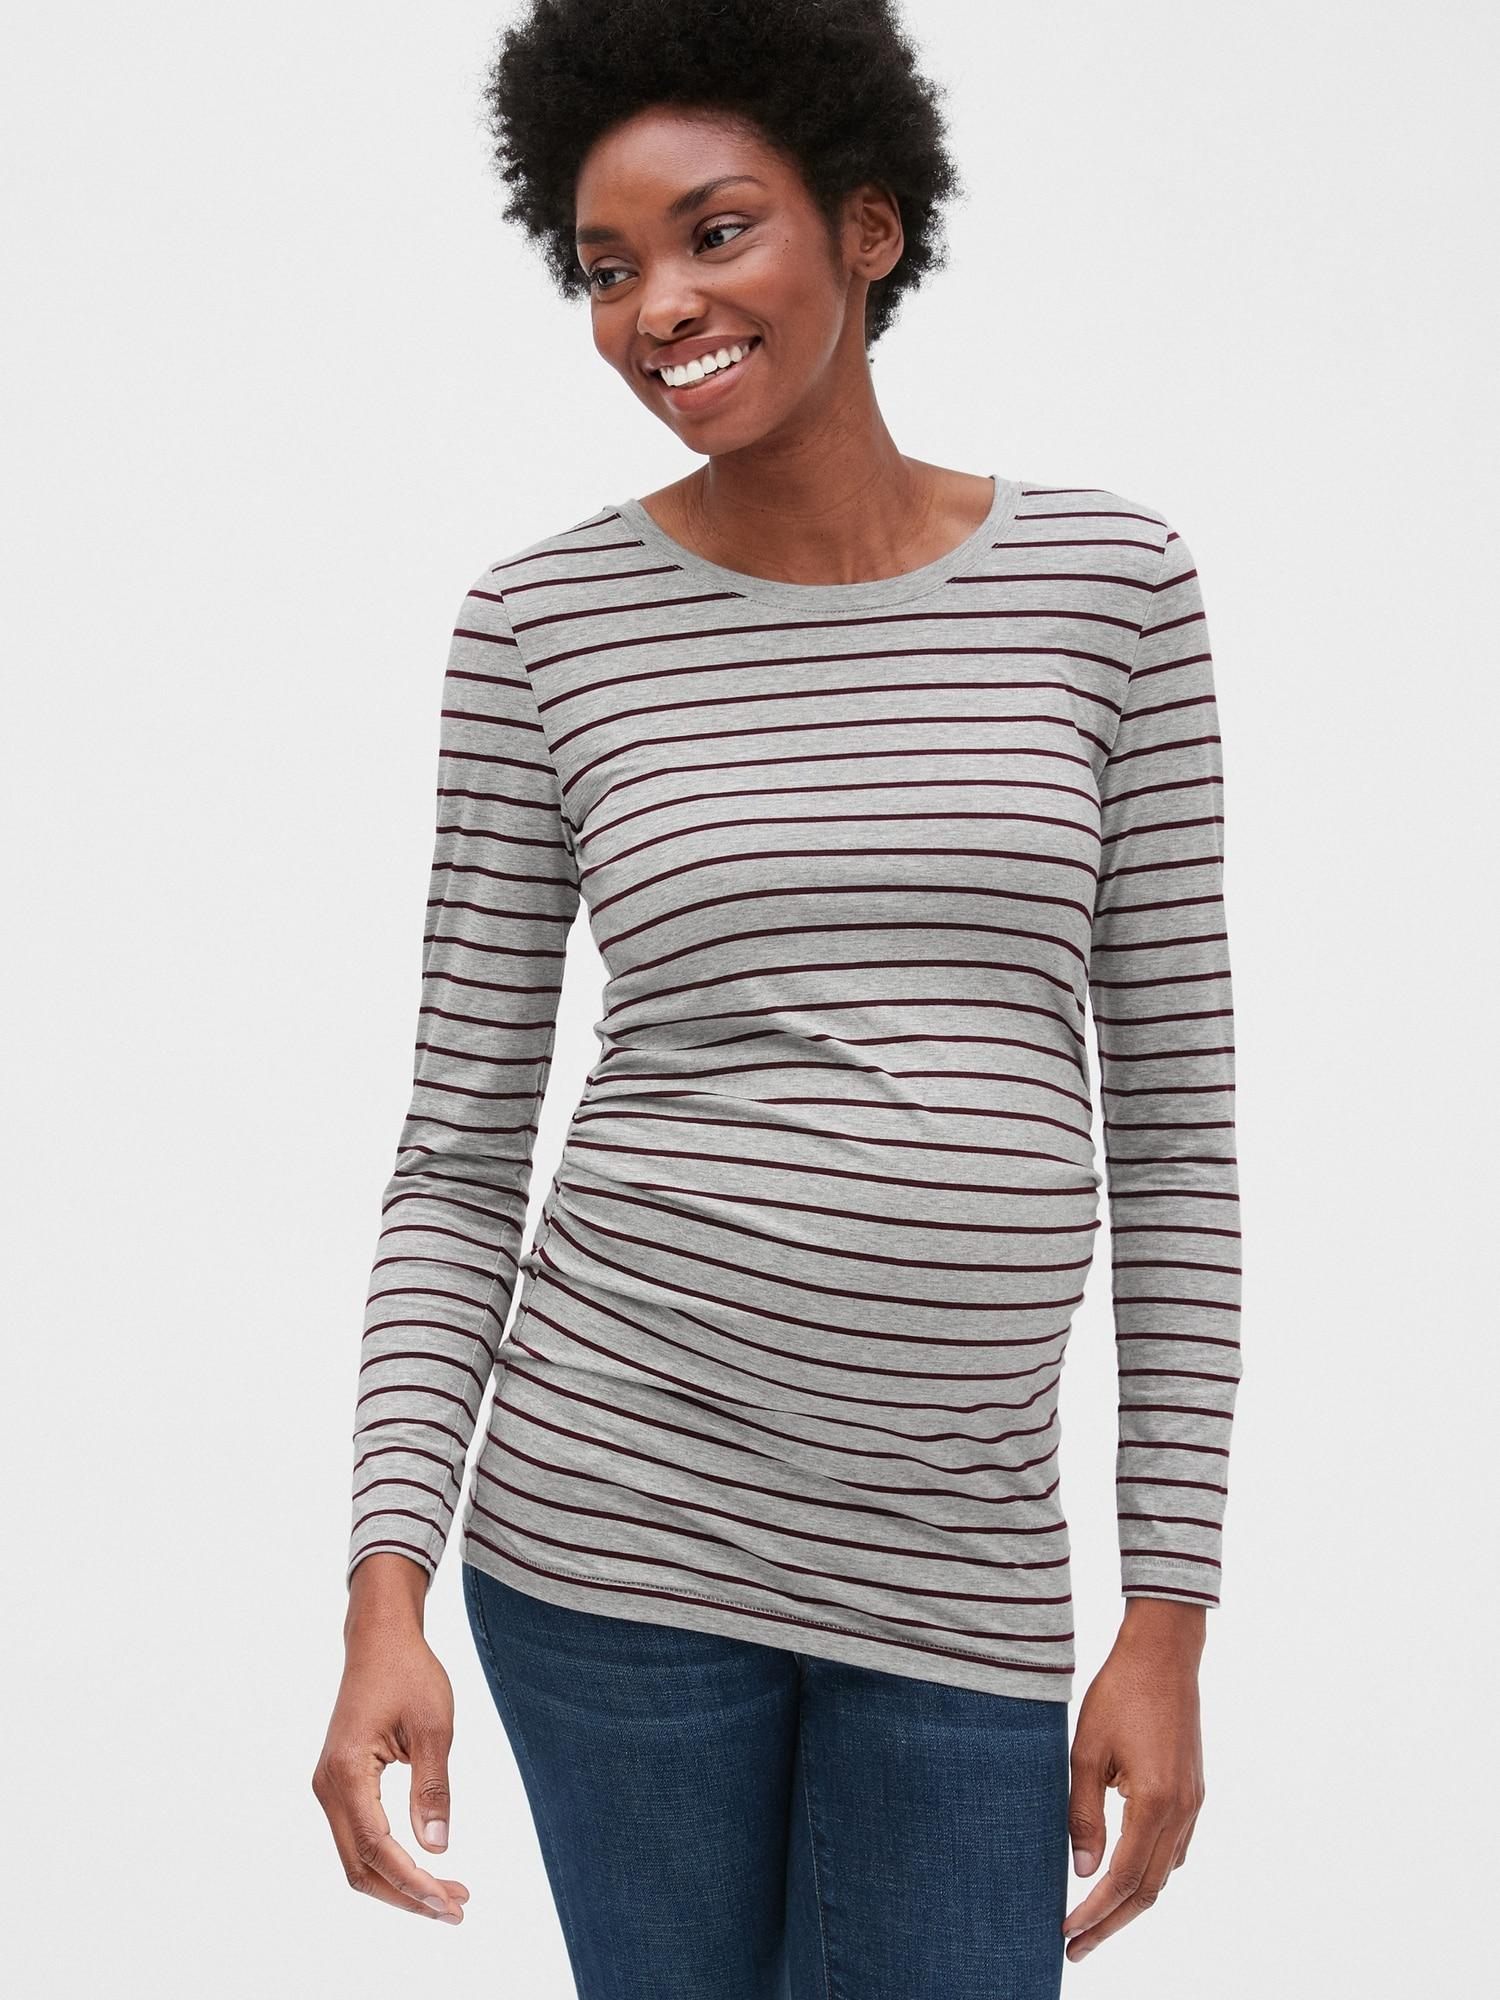 c5a8d2f0b553 ... Maternity Pure Body Stripe Long Sleeve Crewneck T-shirt - Lyst. View  fullscreen